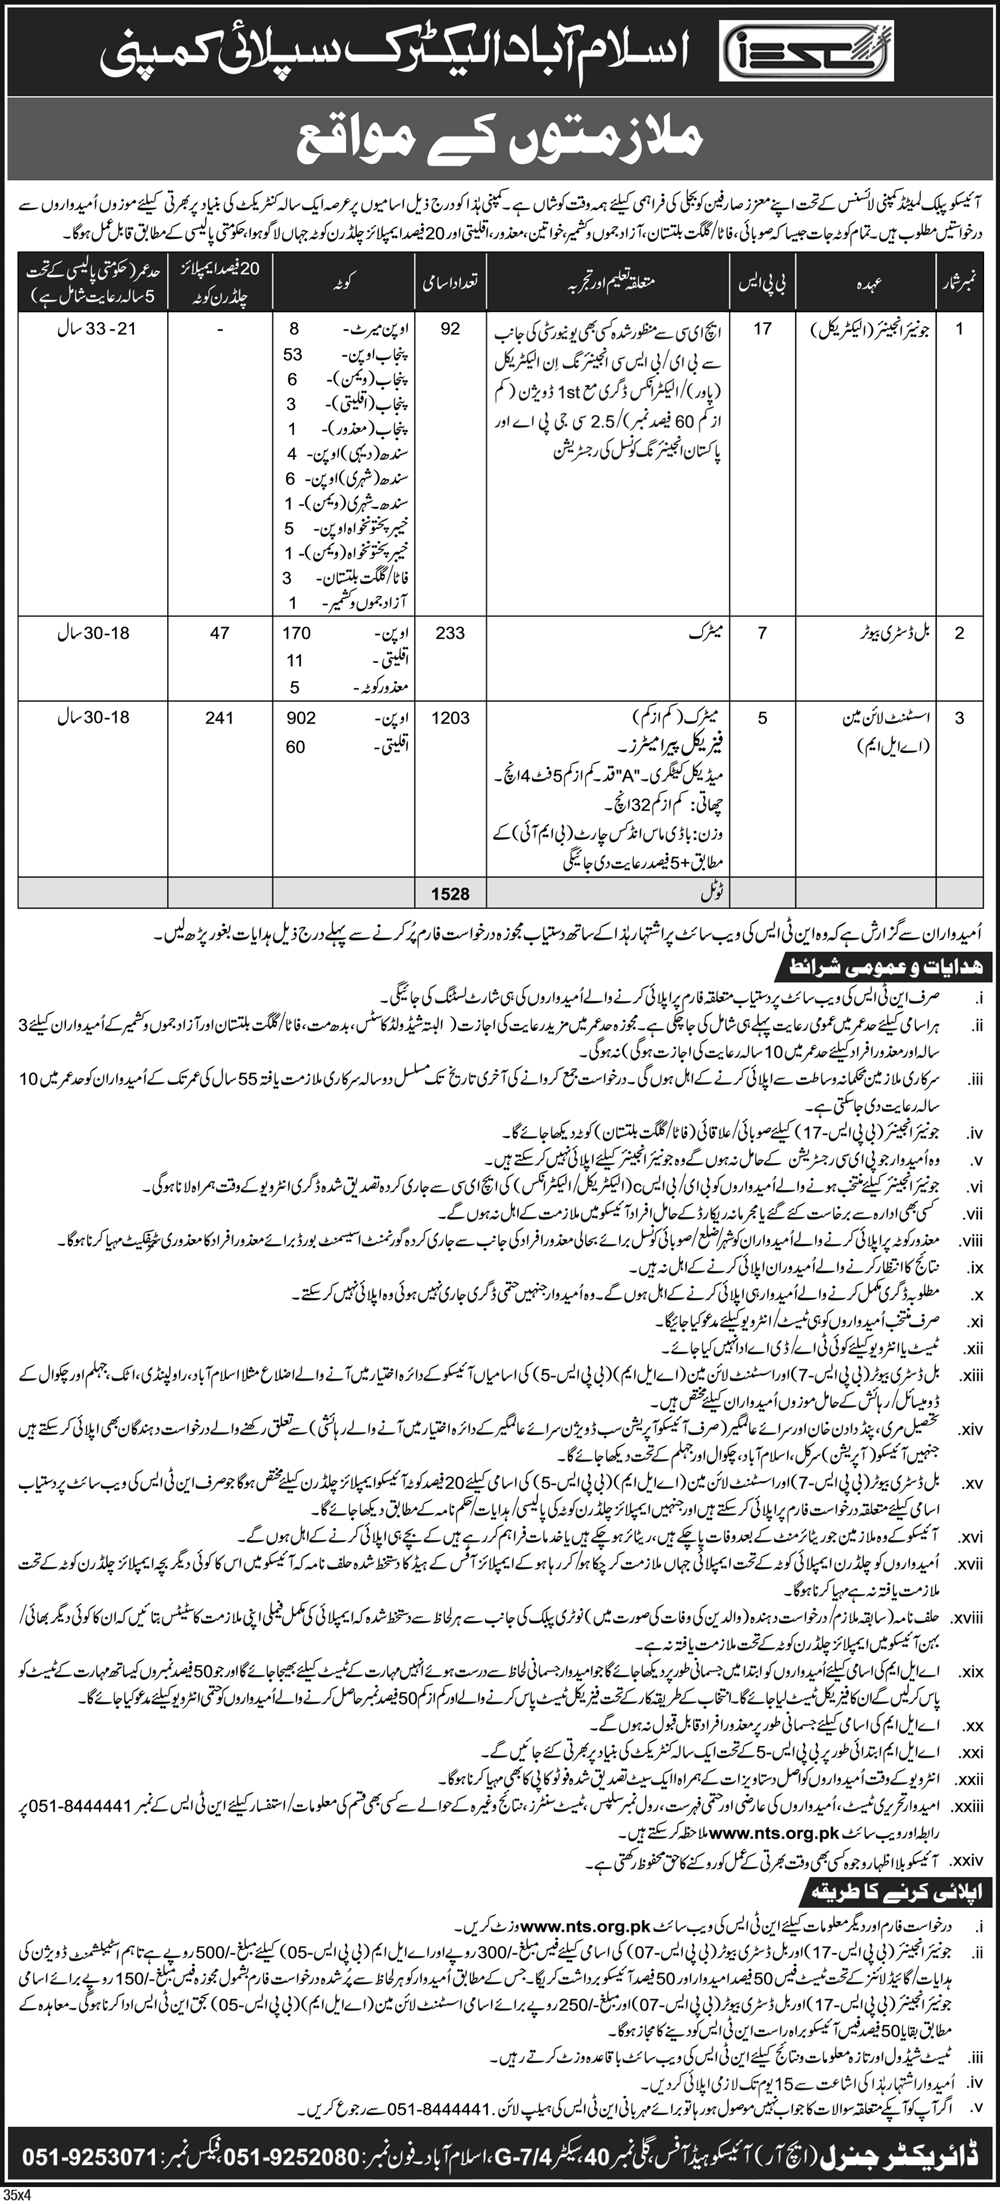 Islamabad Electric Supply Company IESCO Jobs NTS Test Answer Keys Result